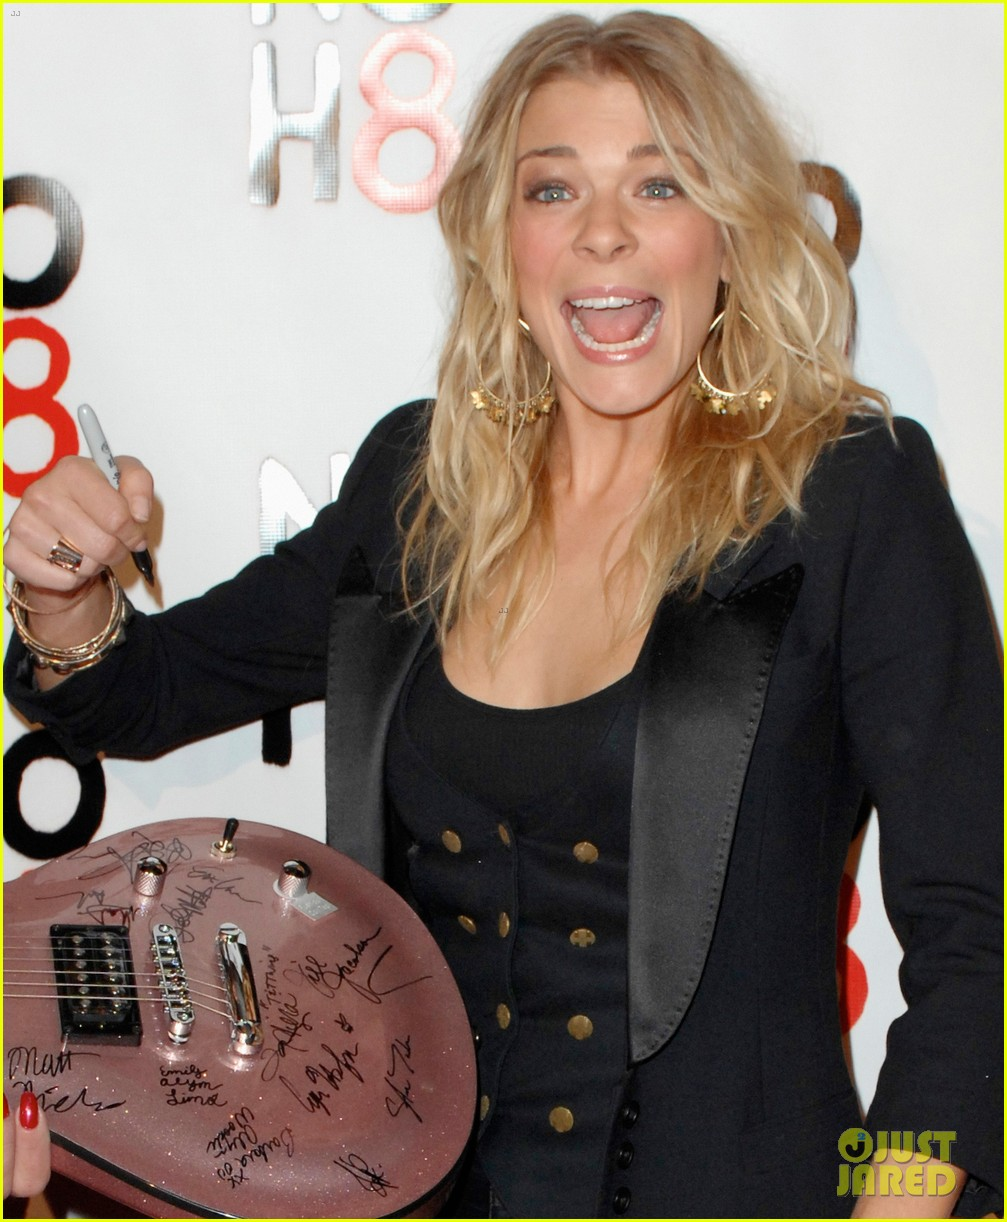 leann rimes noh8 campaigns 3 year anniversary celebration 102609851